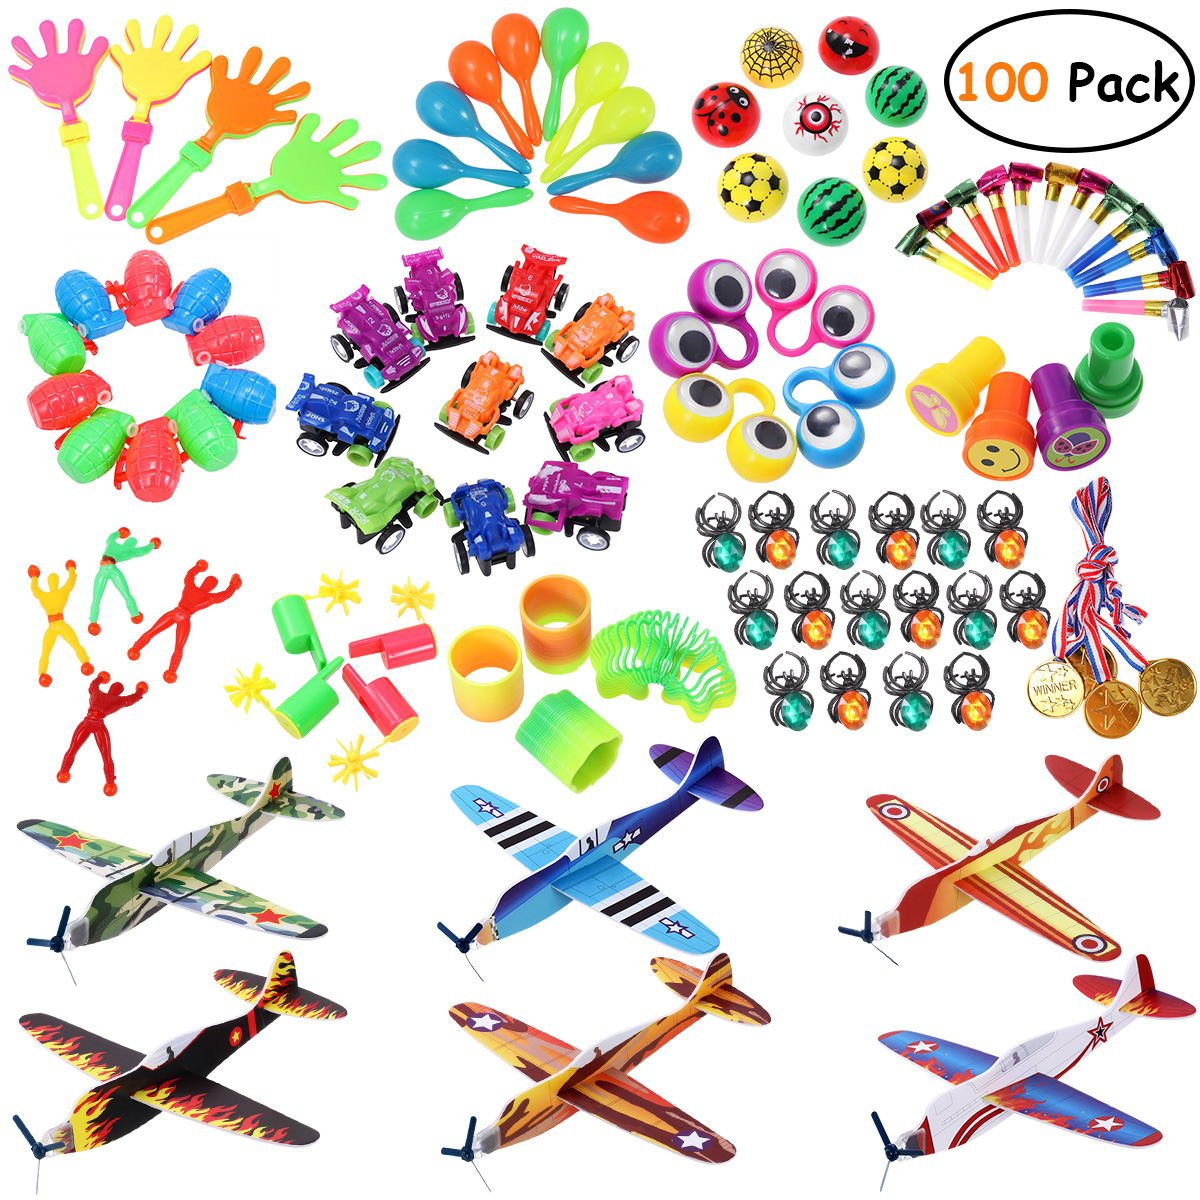 iBaseToy Party Prizes, 100PCS Party Favors Toy Assortment for Kids Birthday Party, Carnival Prizes, School Classroom Rewards, Pinata Fillers, Party Toys with Glider Planes, Medals, Party Noise Maker